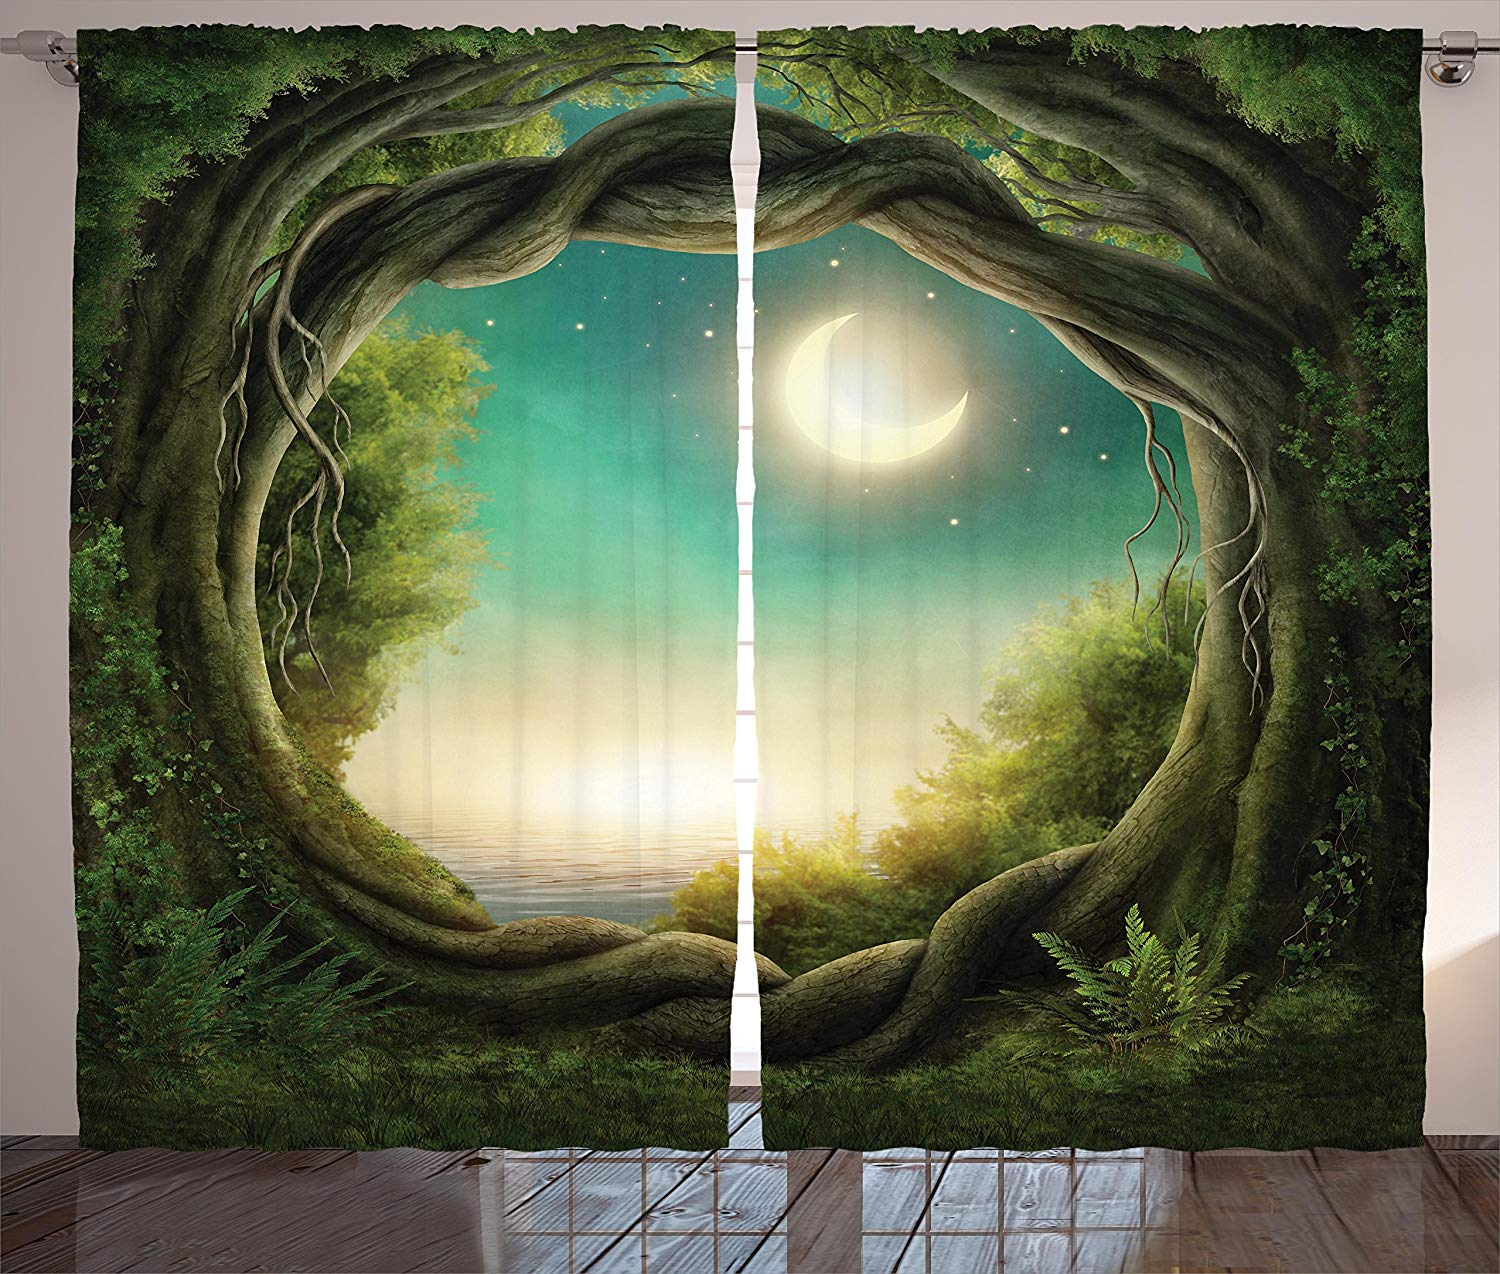 Kids Curtains Decor Trees in Enchanted Forest Full Moon Artistic Artwork Girls Boys and Family Living Room Bedroom Window Drapes